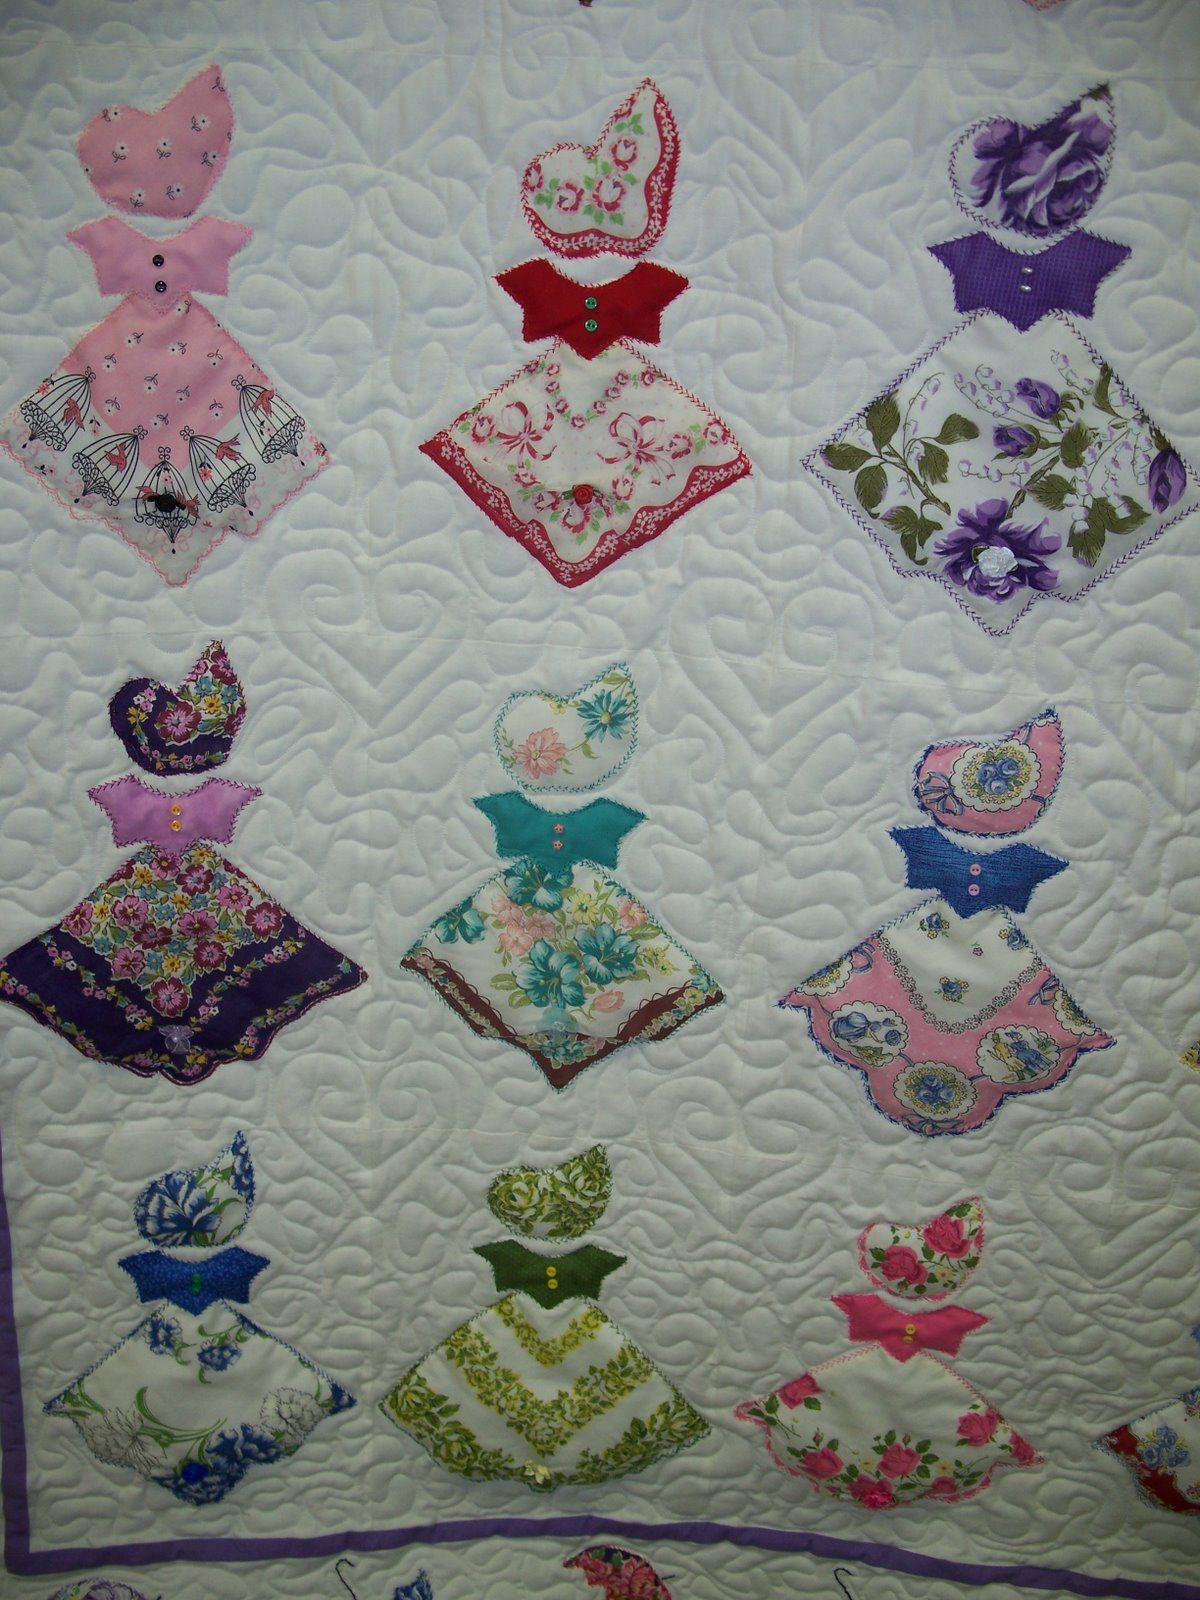 Deerecountry Quilts Handkerchief Quilt At The Fair